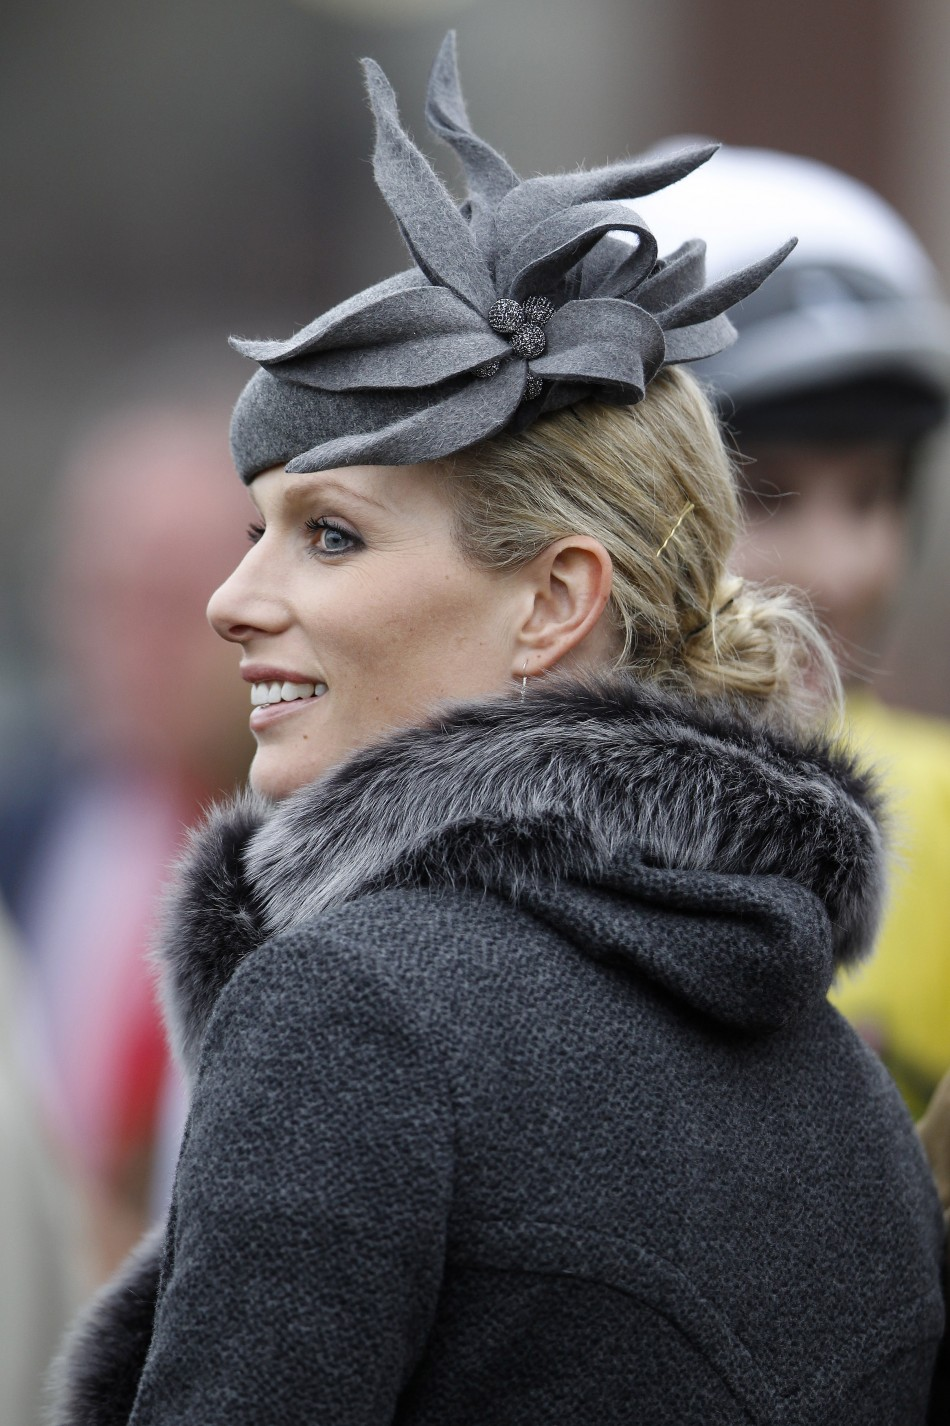 Charcoal Grey Zara Phillips In High Fashion At The Cheltenham Festival